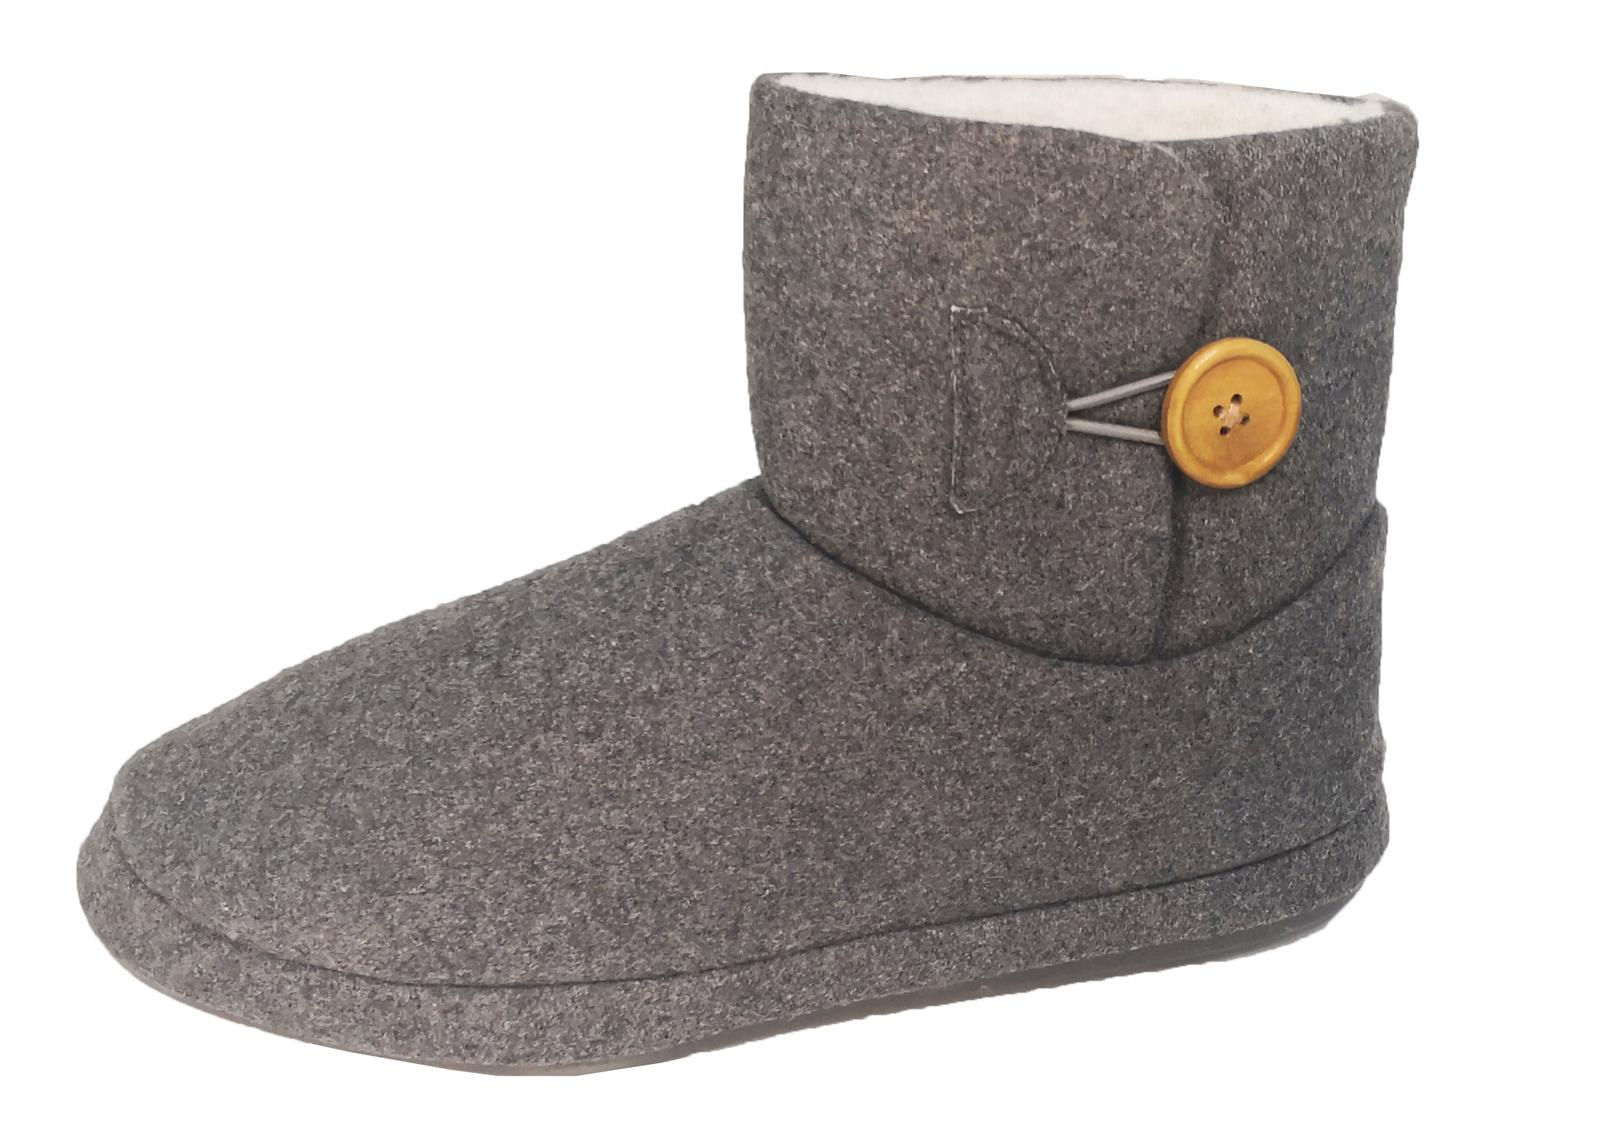 Archline Orthotic Ugg Boots Slippers